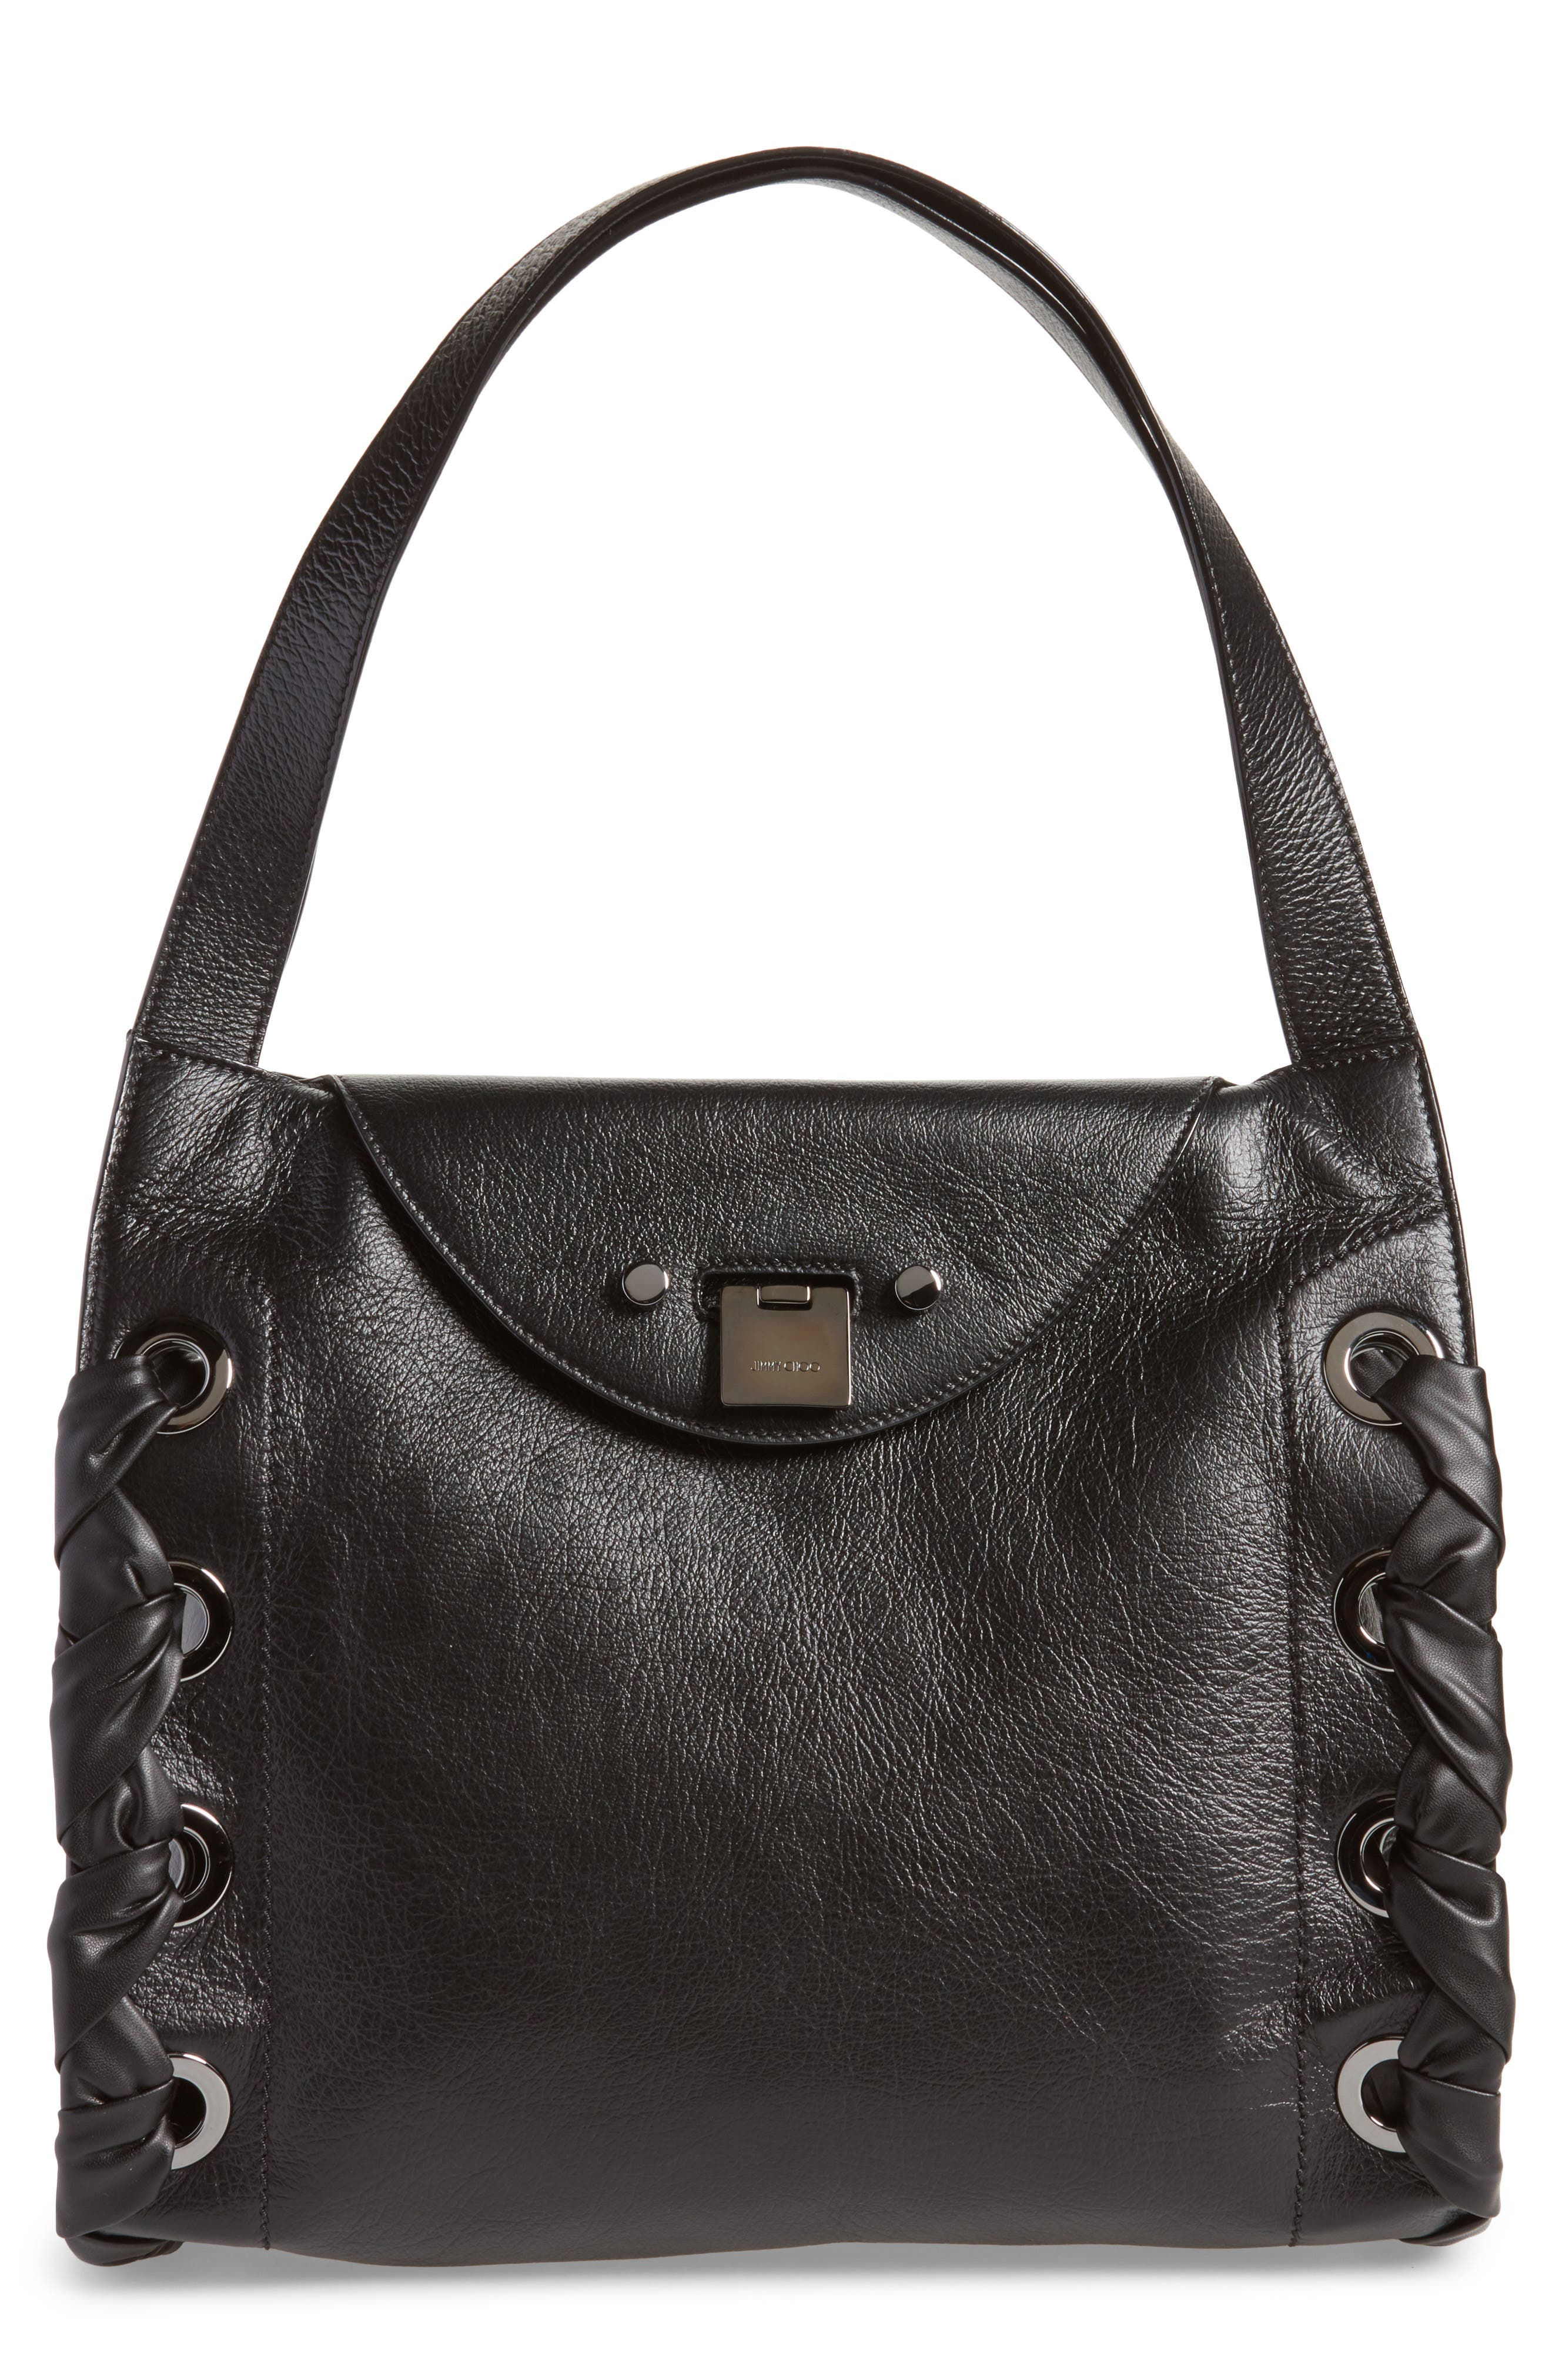 Rebel Leather Shoulder Bag,                         Main,                         color, Black